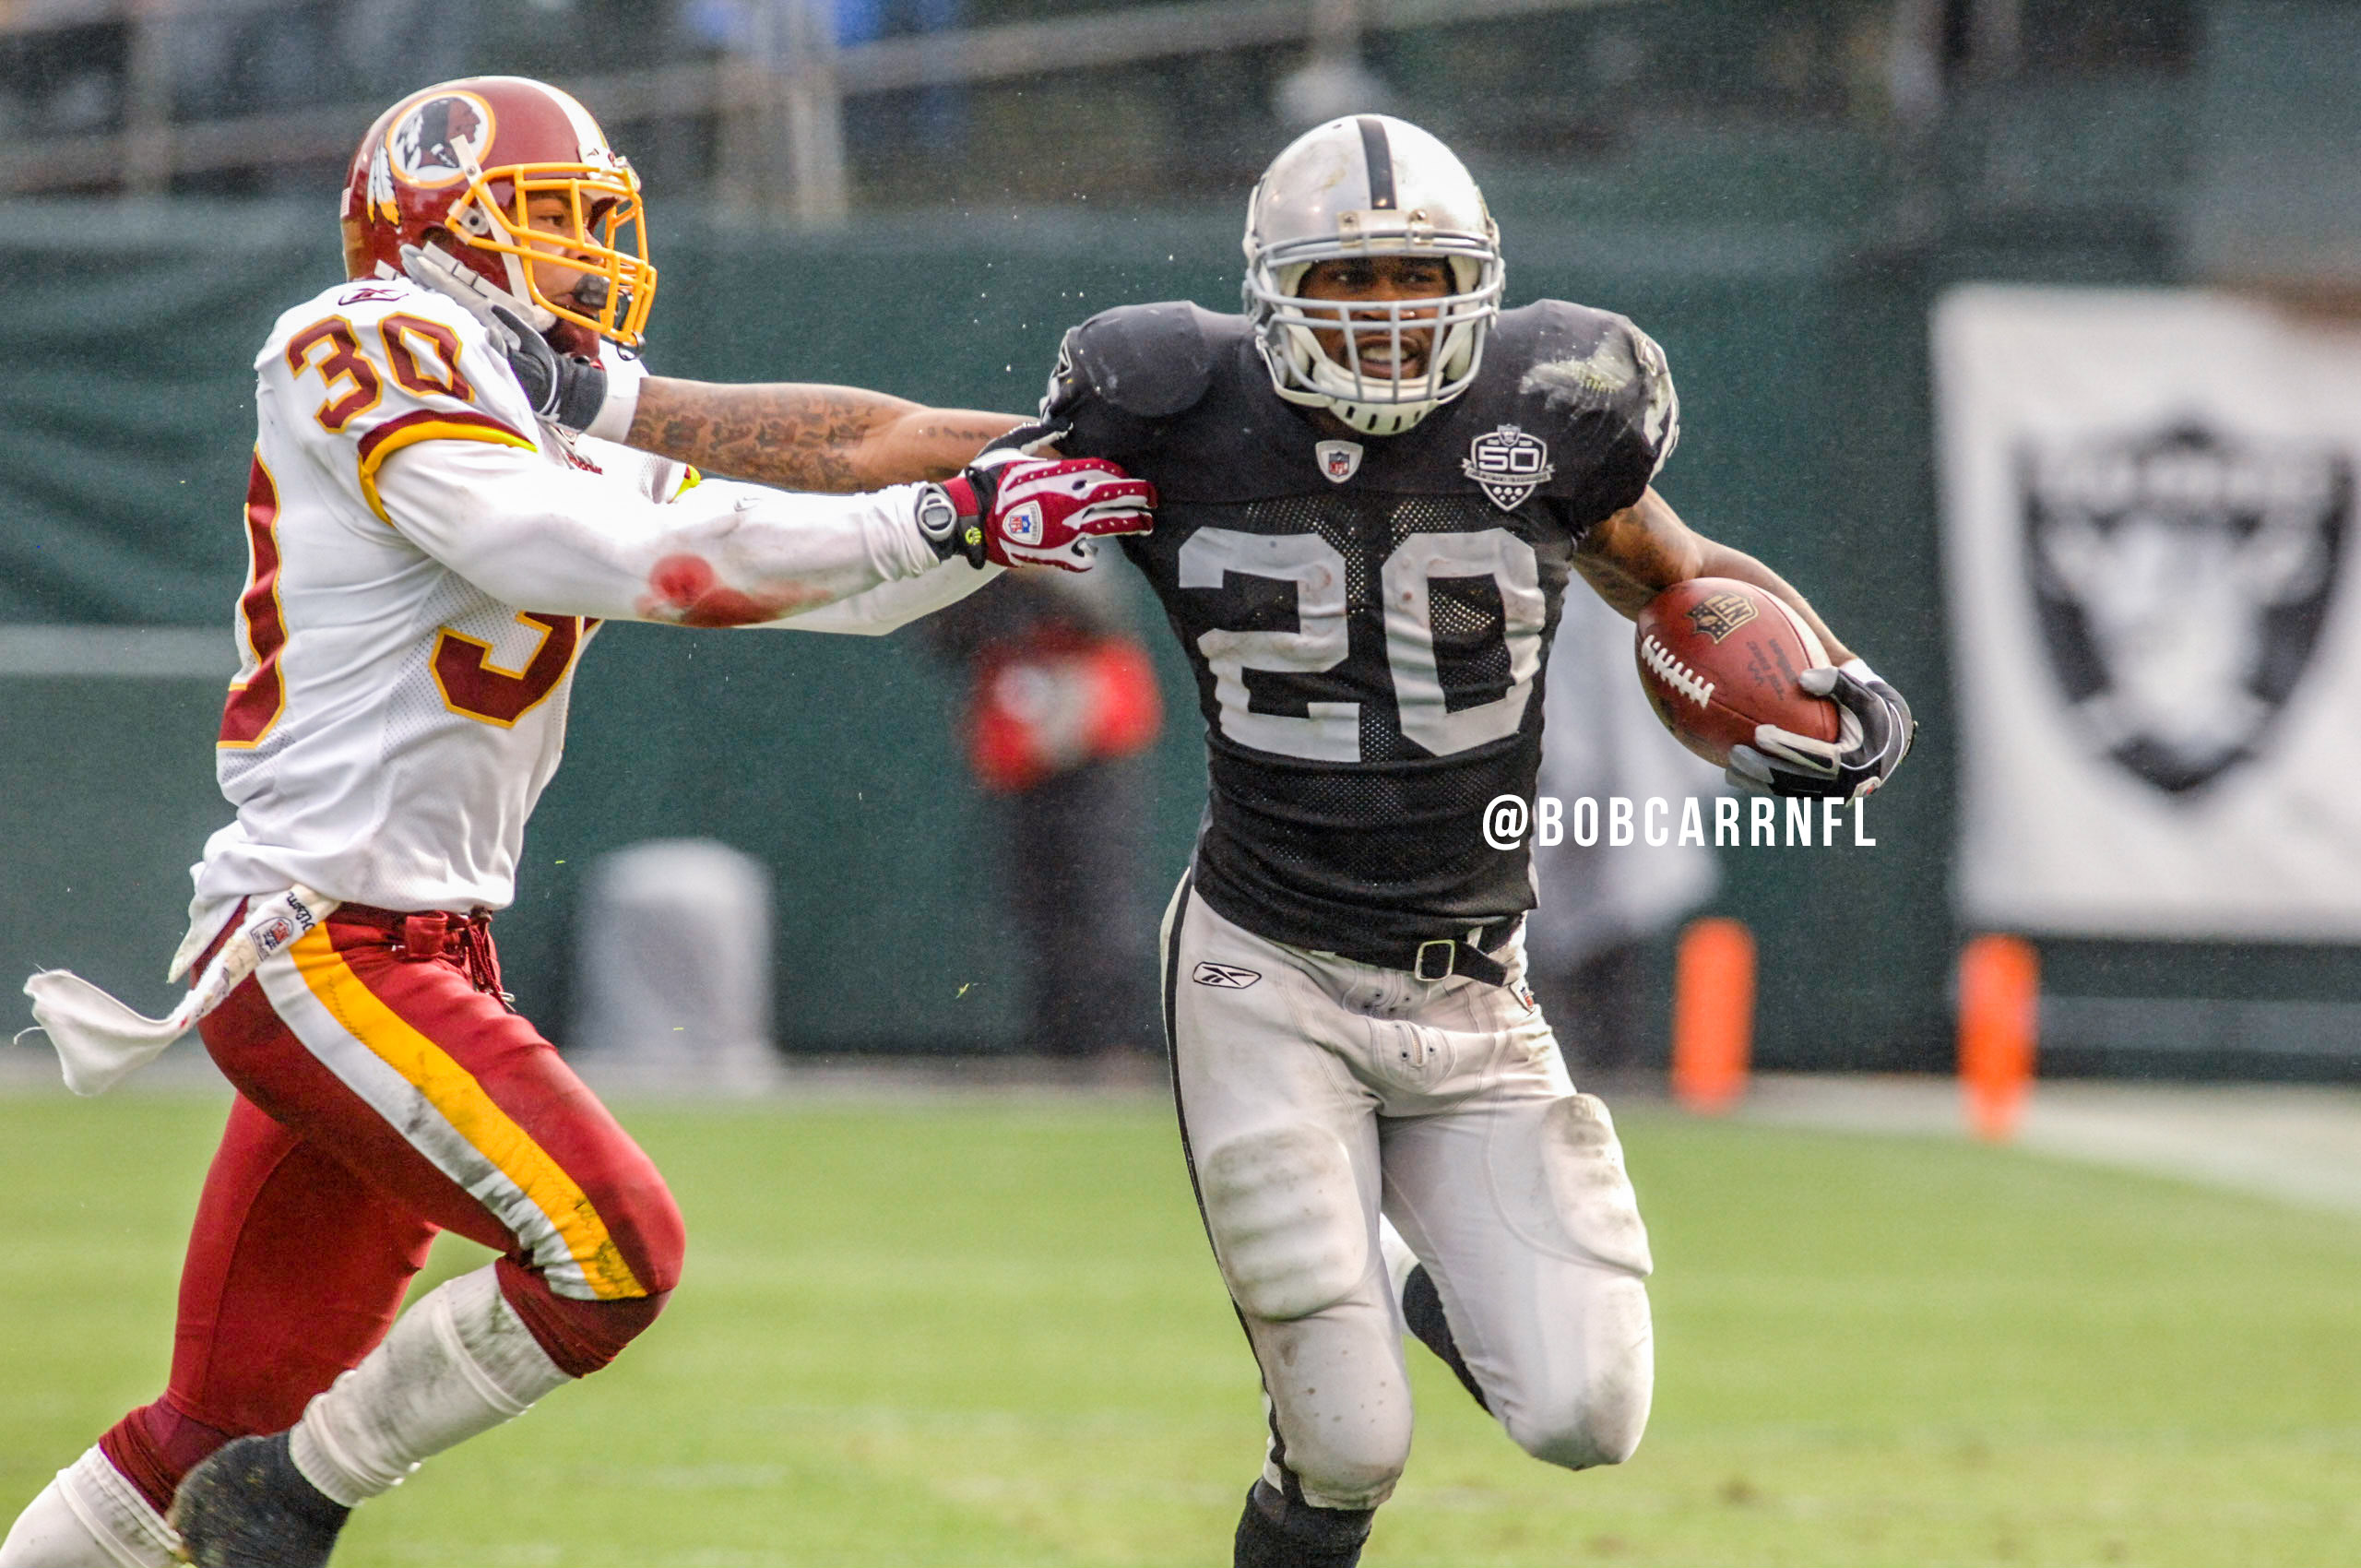 Prediction for Redskins vs. Raiders